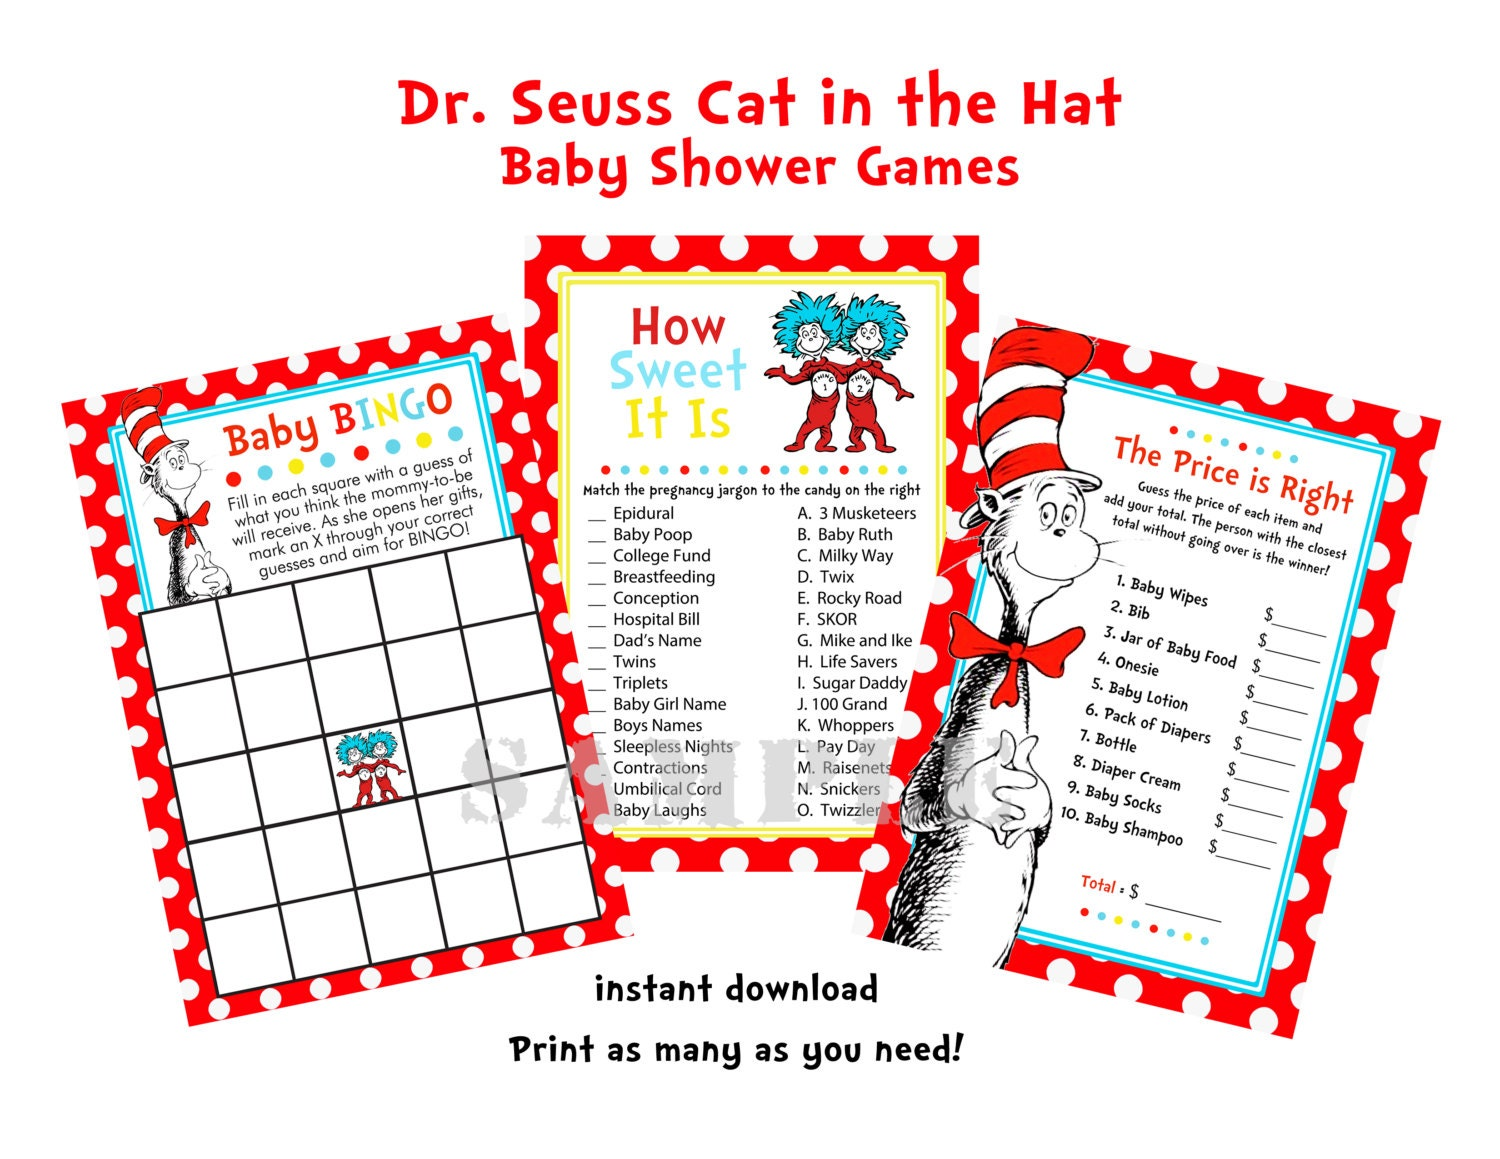 dr seuss cat in the hat baby shower games how by purplepoppylove